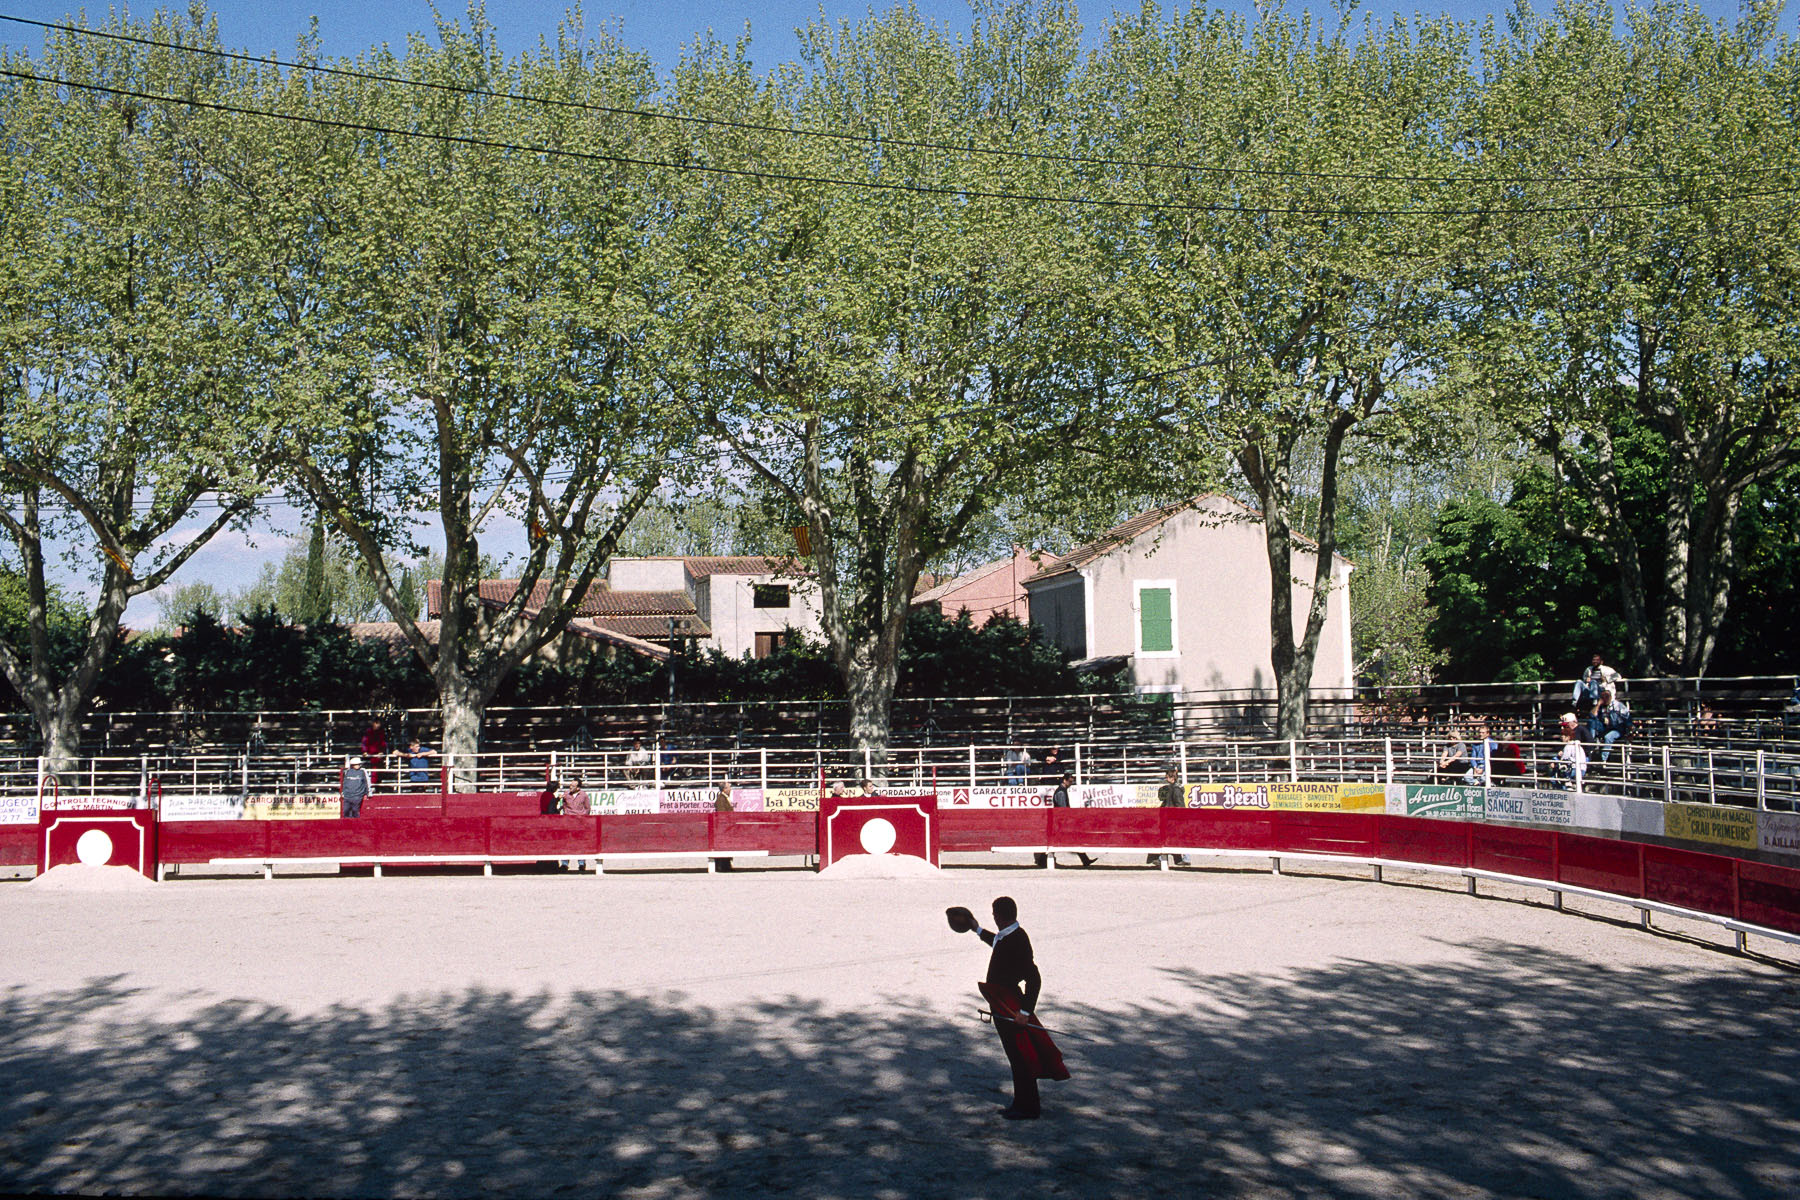 Novillada, bullfight with only novice toreros, on the village place. 2000